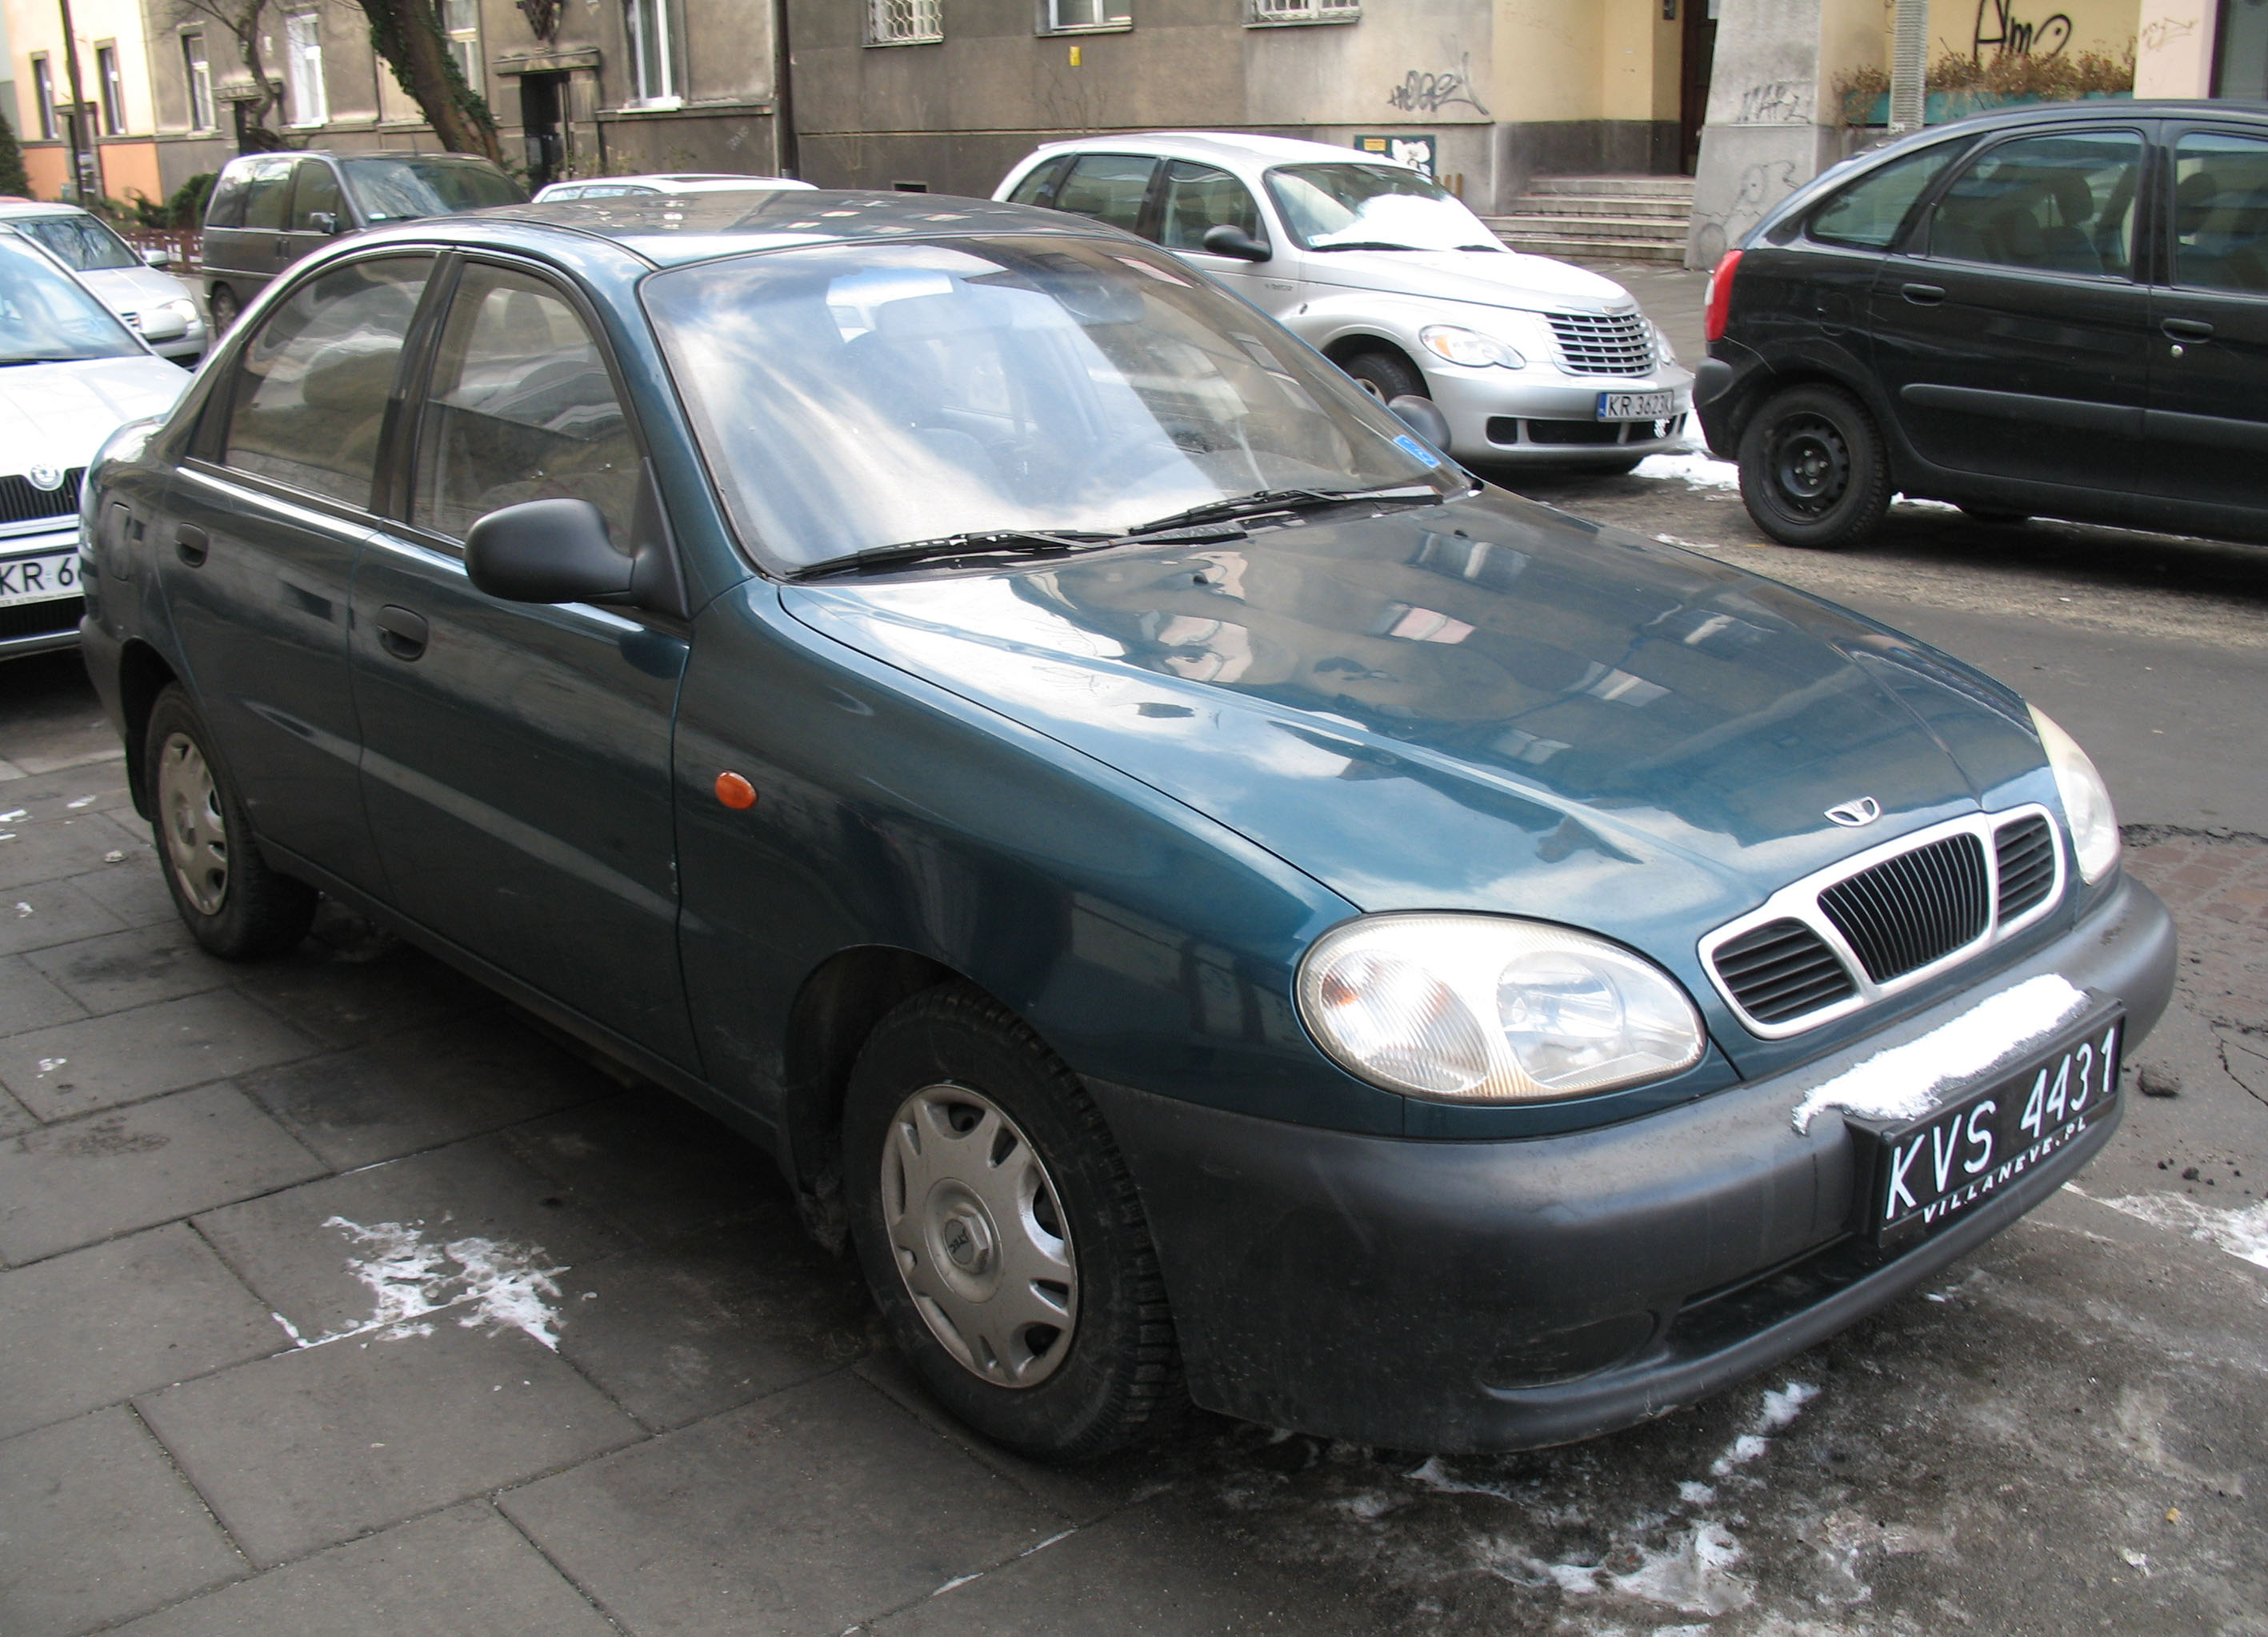 File:Green Daewoo Lanos 4d in Kraków (1).jpg - Wikimedia Commons